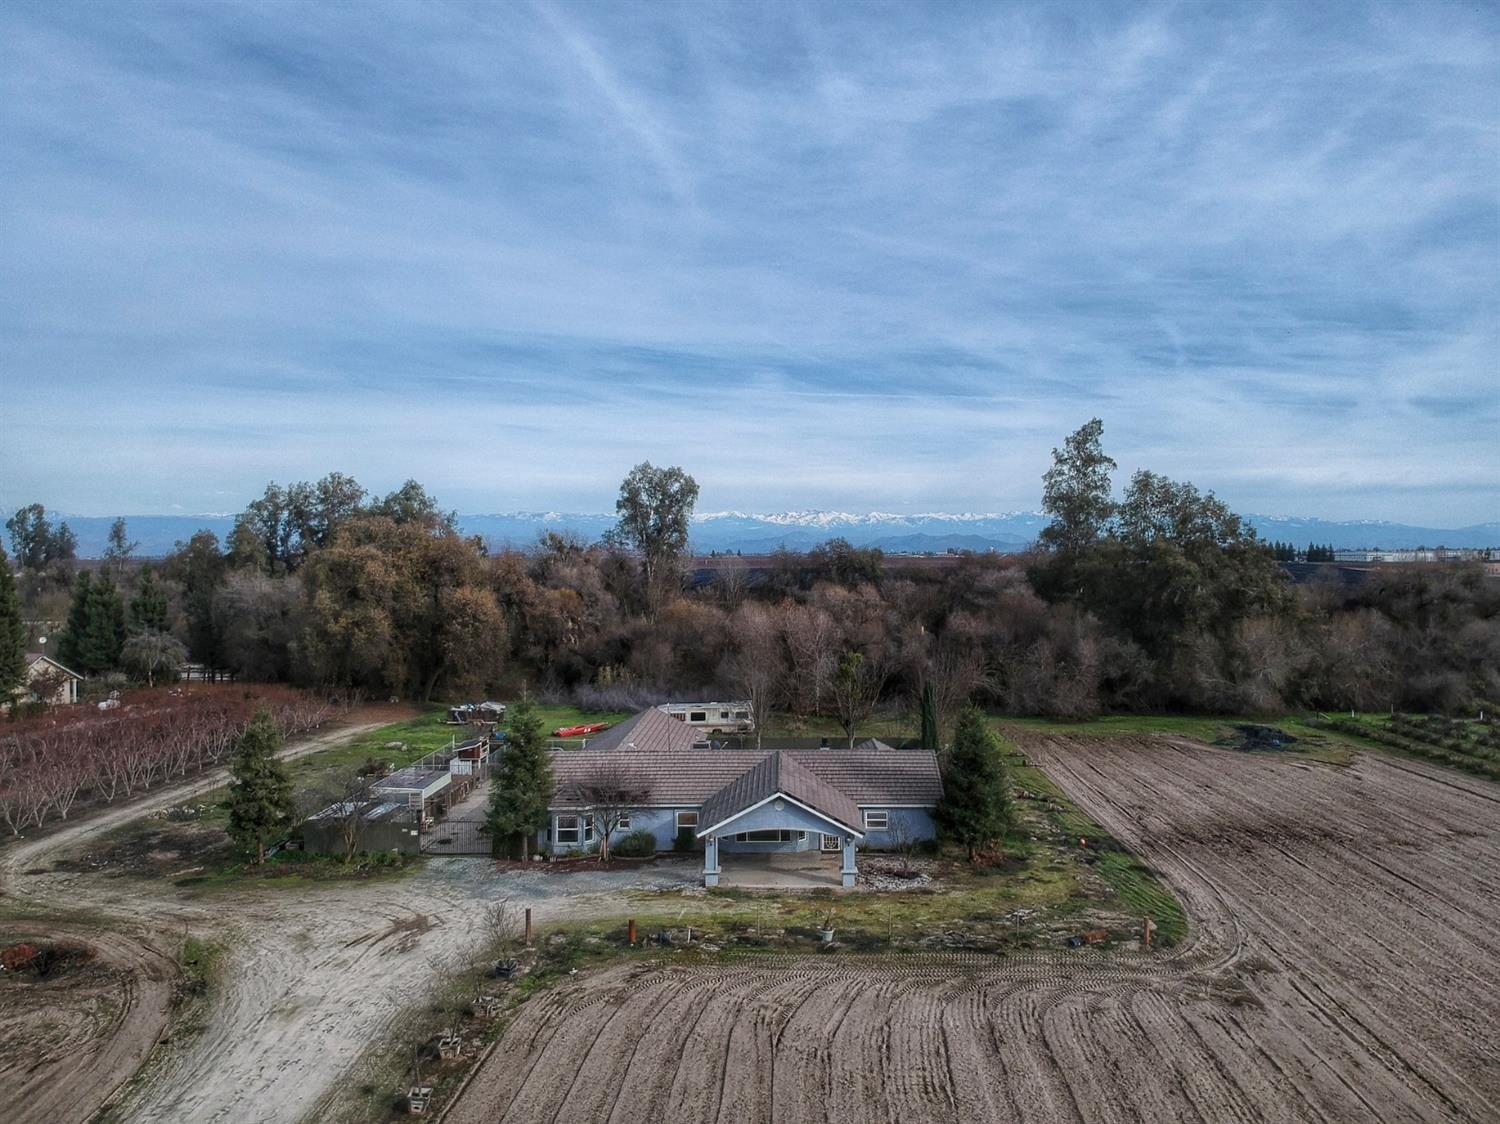 Here is your chance to own Riverfront property in the Clay school district! It is not often that these types of properties hit the market. Don't miss your chance. This property consists of 8.07 acres with aprox 5 acres open for planting. There is a custom home on the property that was built in 2001. The home has a split floor plan with 3 bedrooms and 2 1/2 baths. There is also a 4 car garage. Near the road is an older Mobile home and garage  that needs to be refurbished but would make a great mother in law unit or rental unit. This property has 347 feet of River frontage! There is a lagoon that will allow you to park up to 4 boats and a boat house down by the water. The boat house needs work but has a kitchen and 1 bedroom with a large covered deck. Imagine the fun you could have at this wonderful property! Great location near Mt View Ave with easy access to the 99 freeway. Call you agent today to see this property!